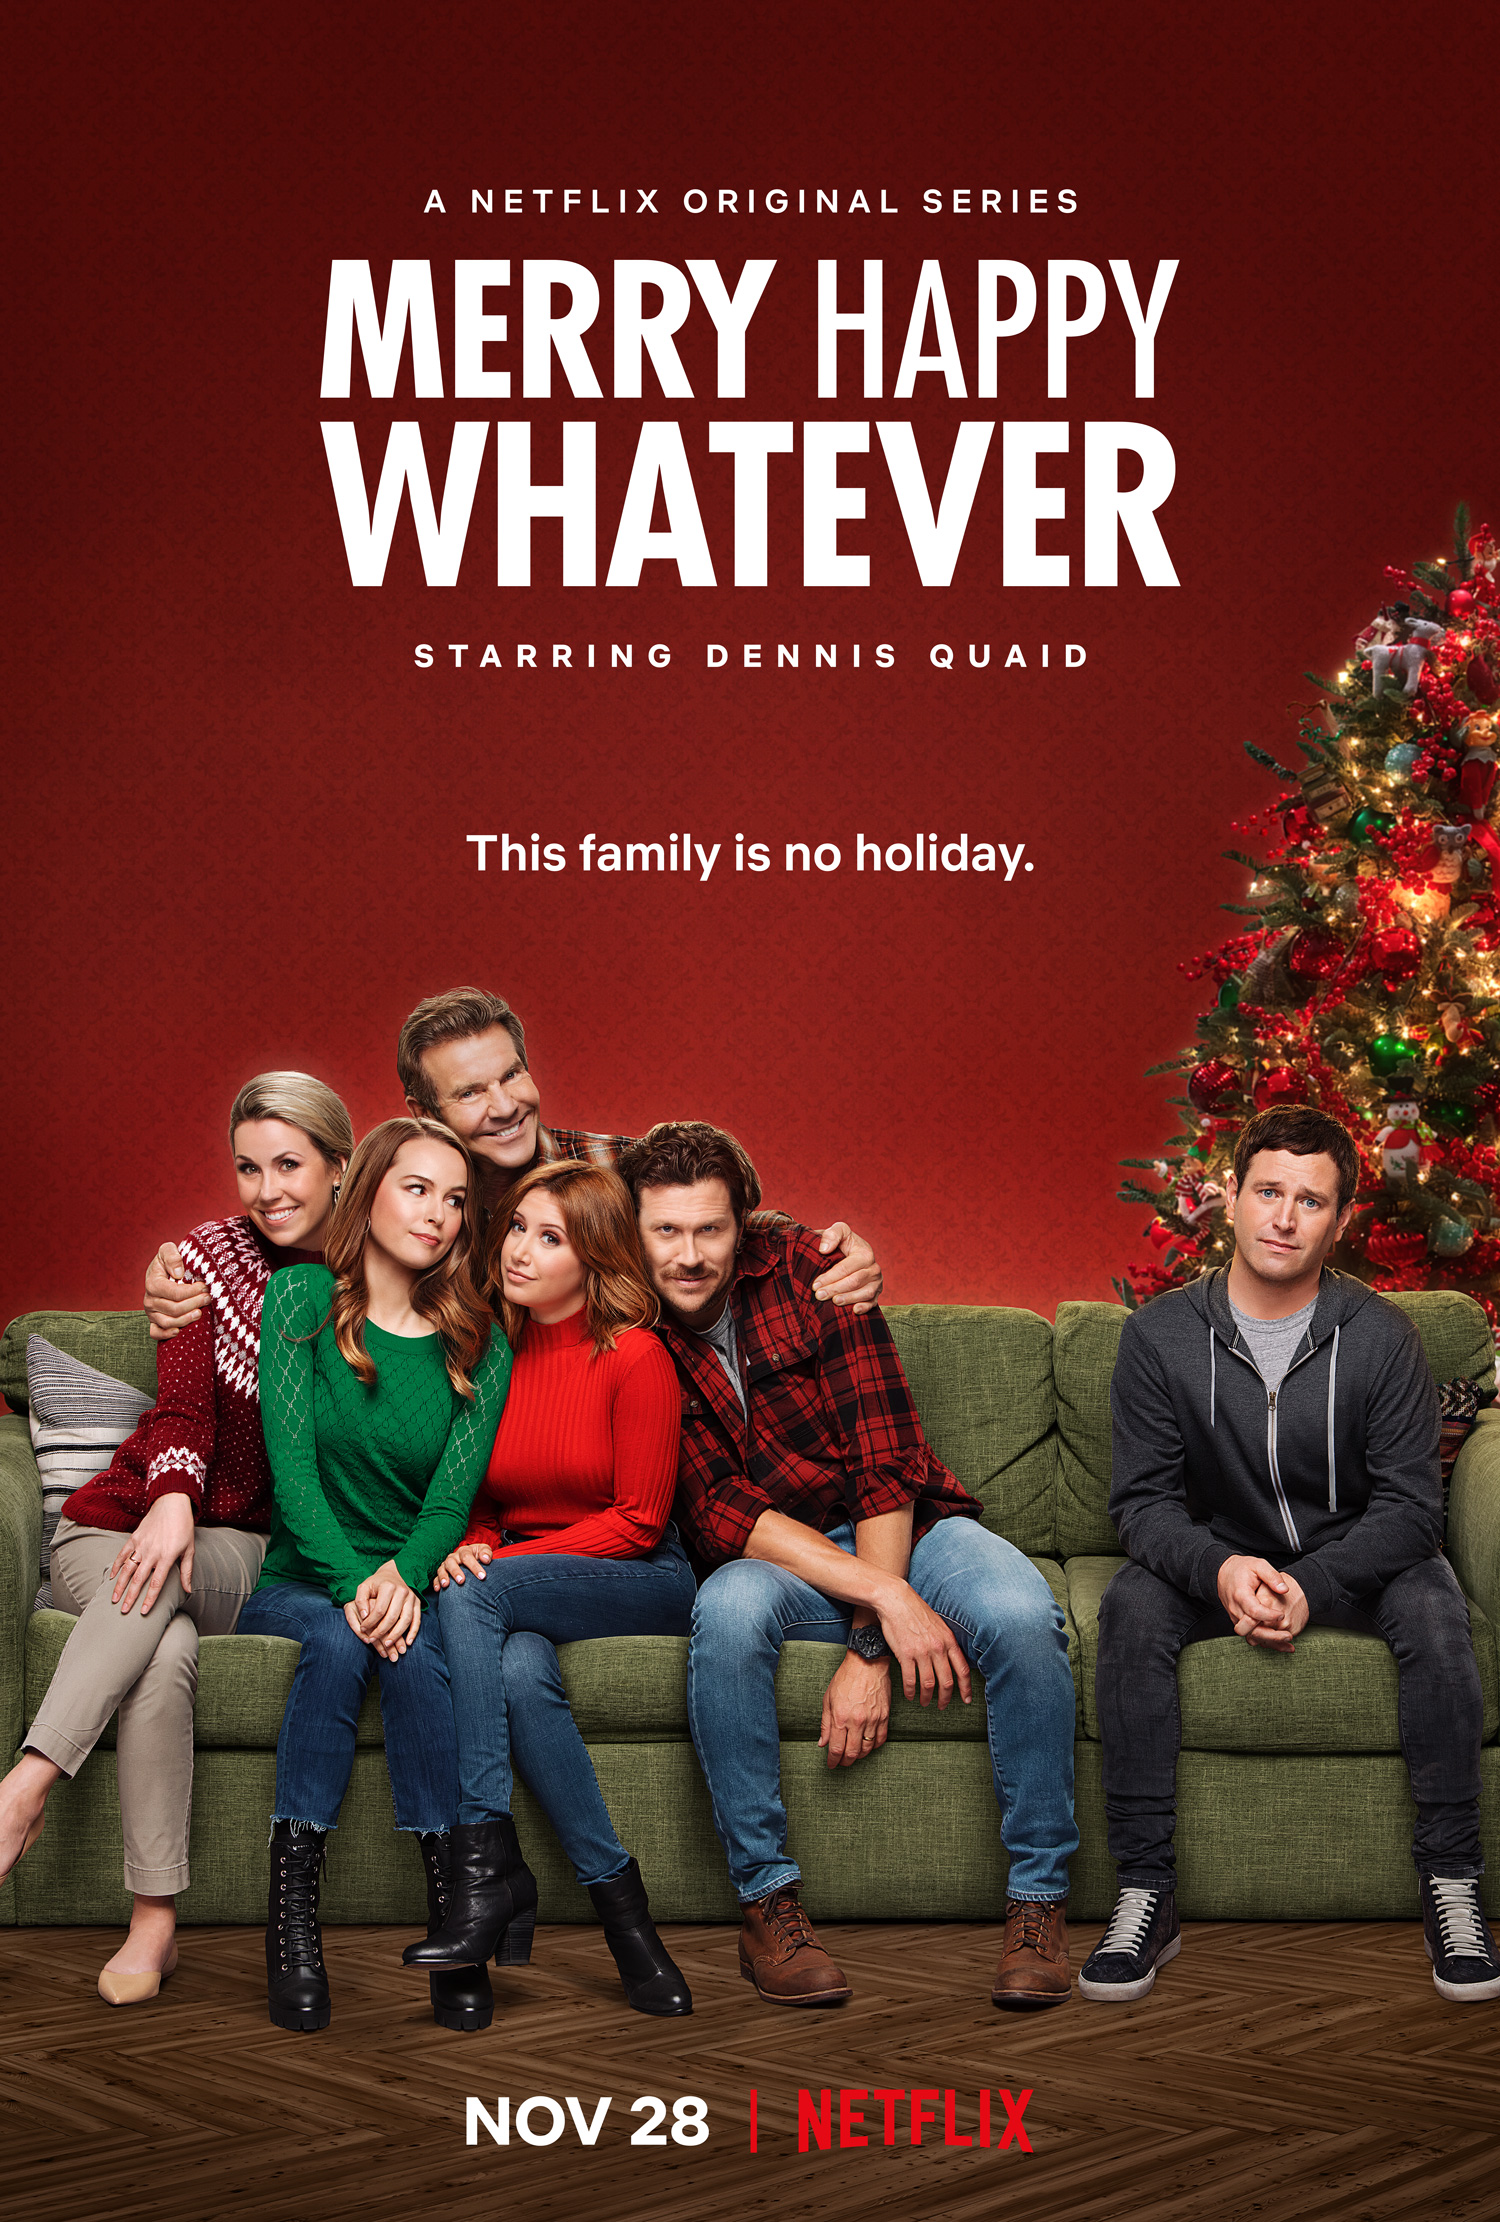 Netflix's Merry Happy Whatever Season 1 Official Trailer